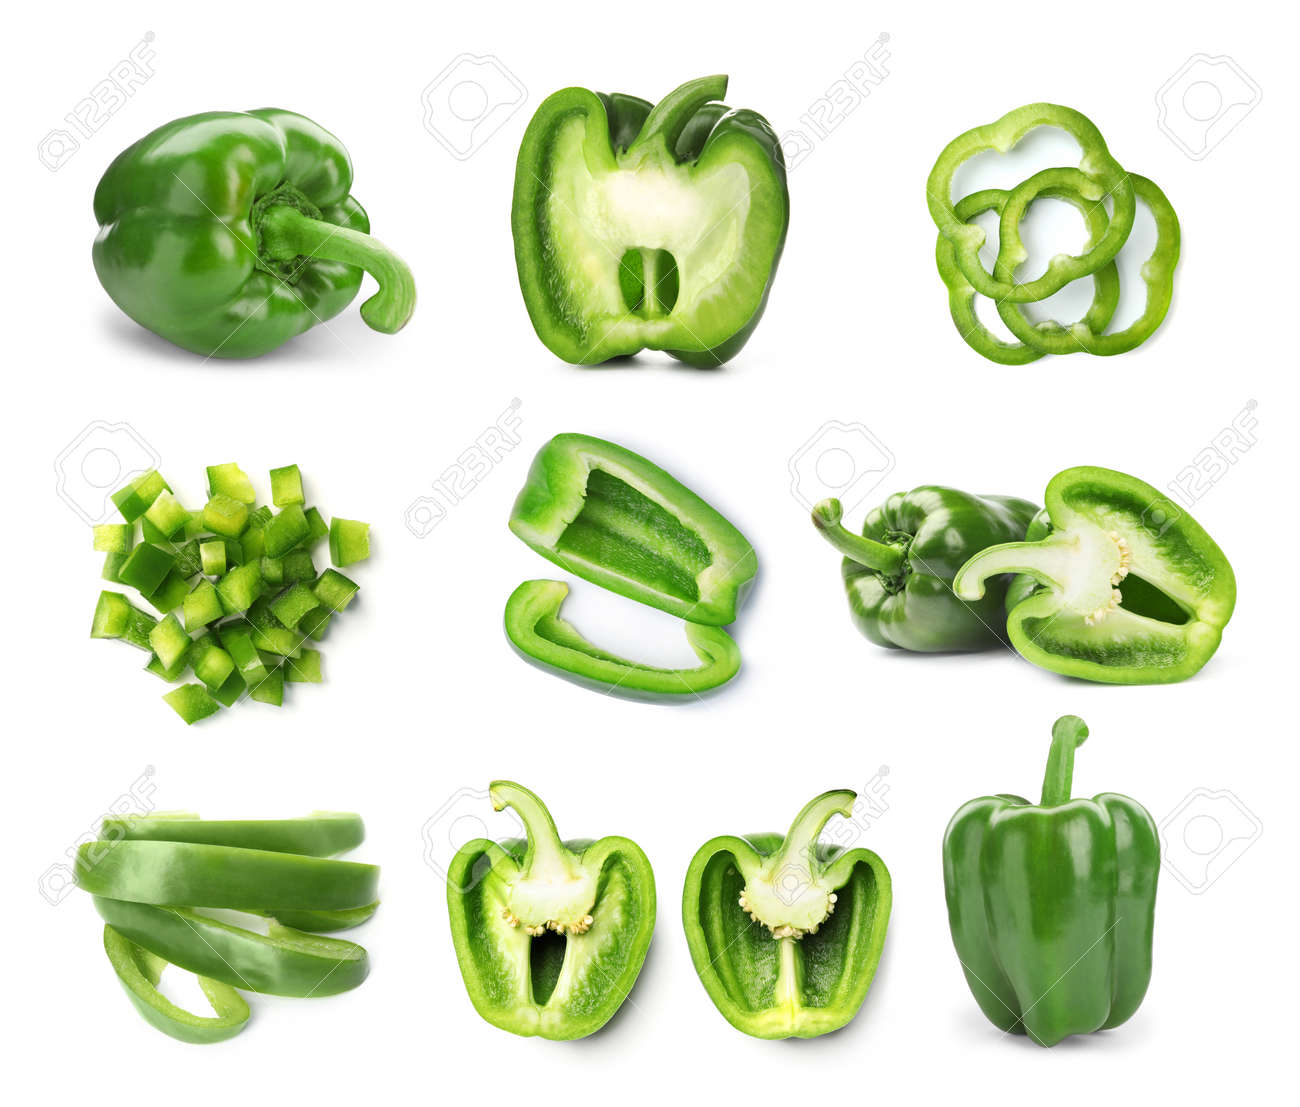 Set of cut and whole green bell peppers on white background - 157208562